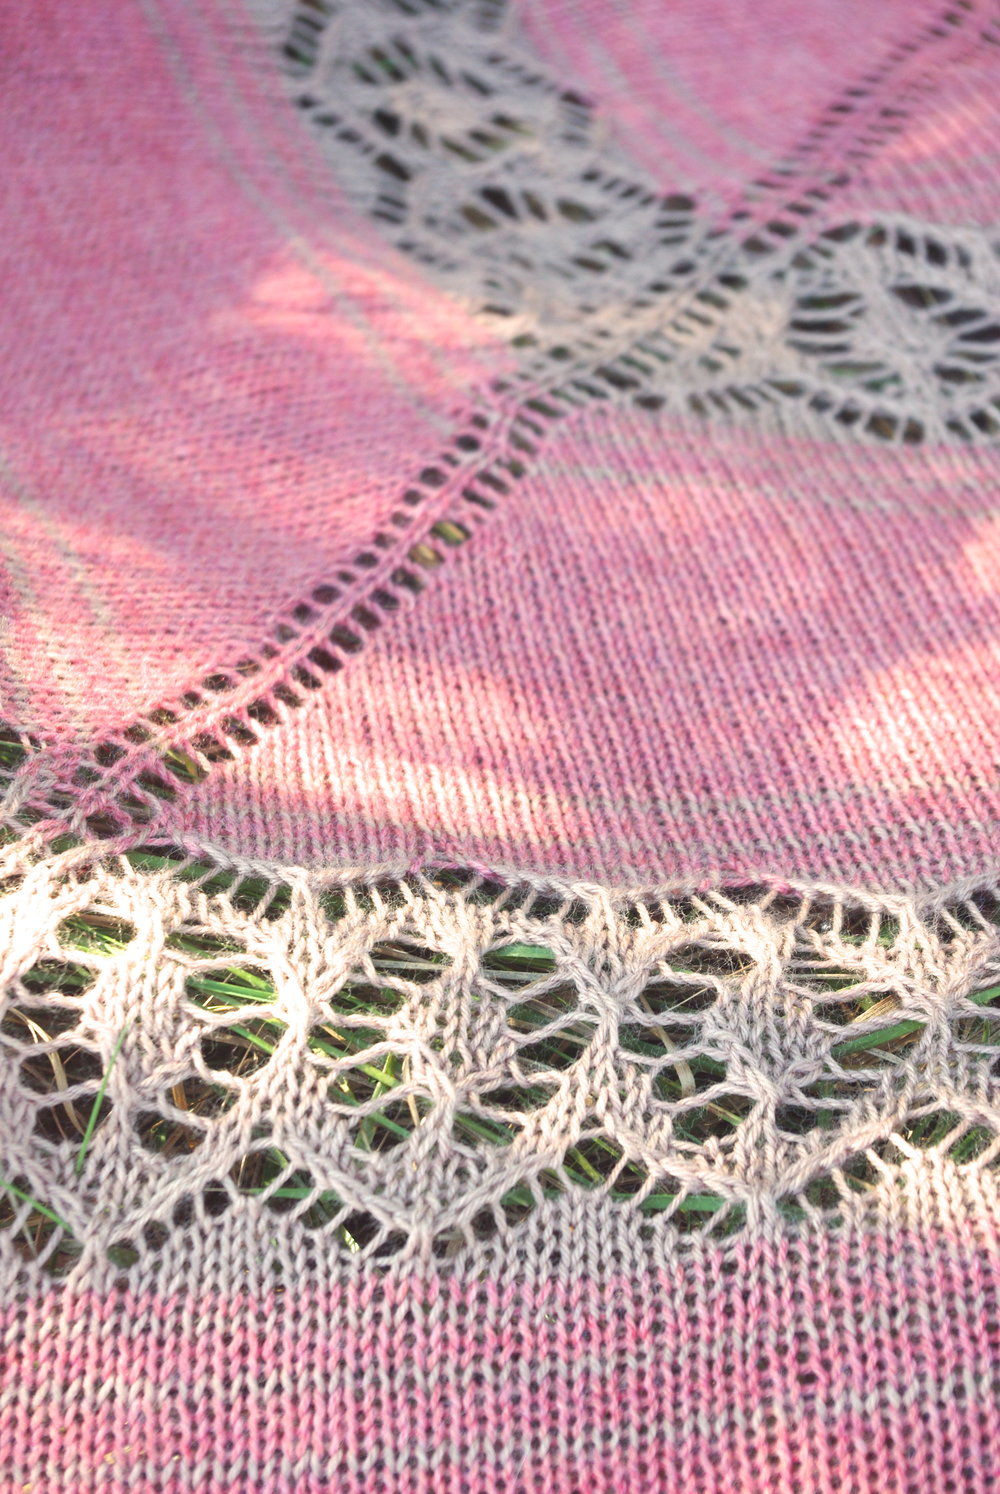 Ezekiel Saw Shawl by Leah B. Thibault